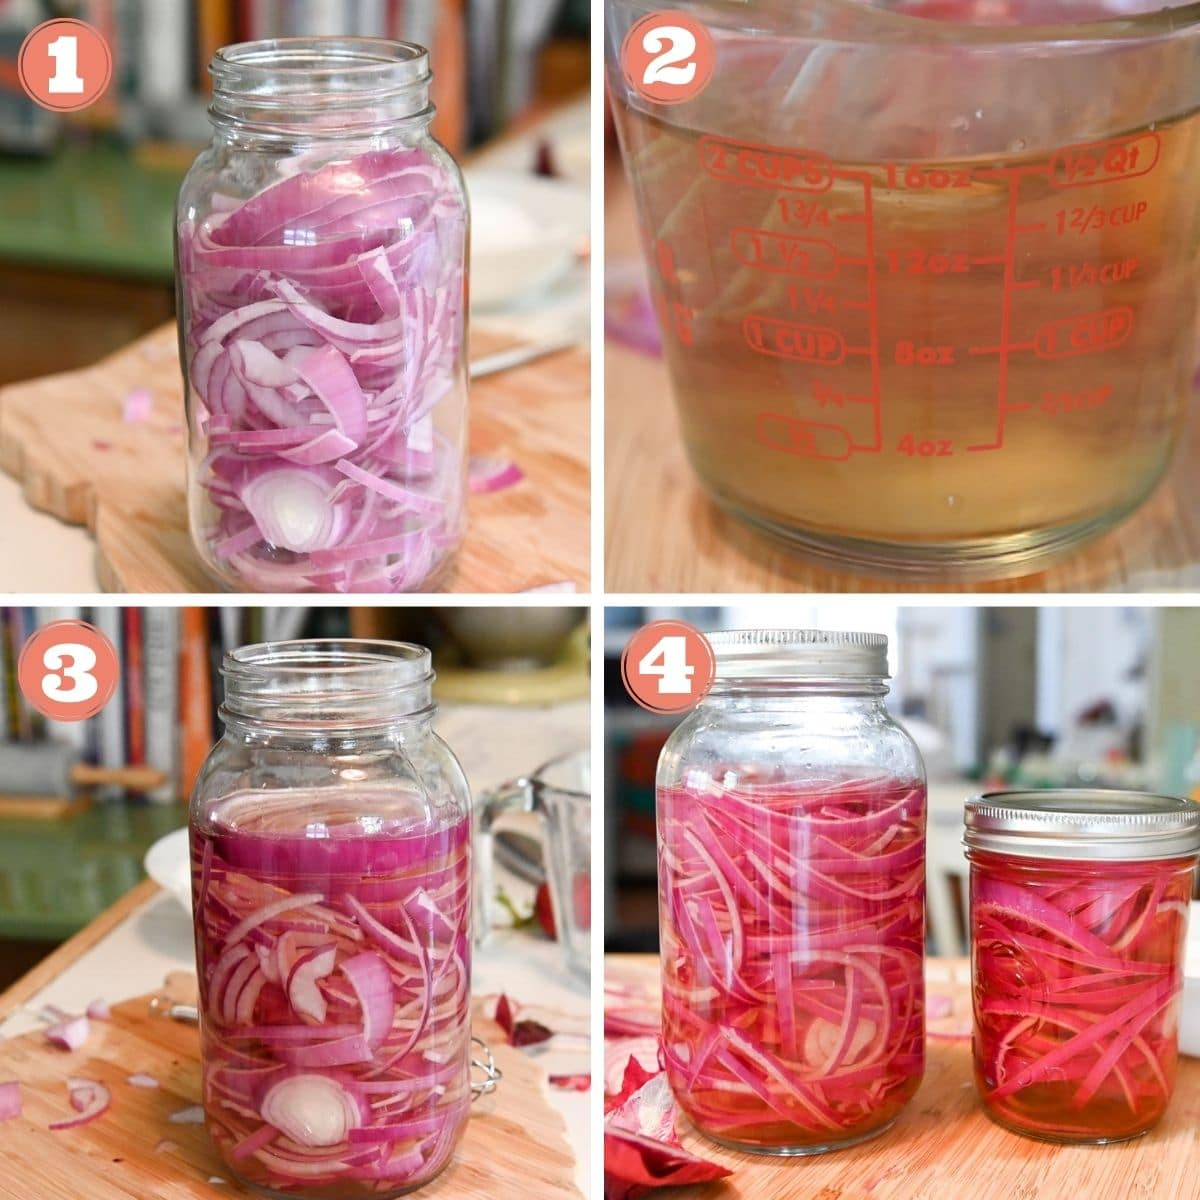 Diagram of steps 1 through 4 to make pickled onions